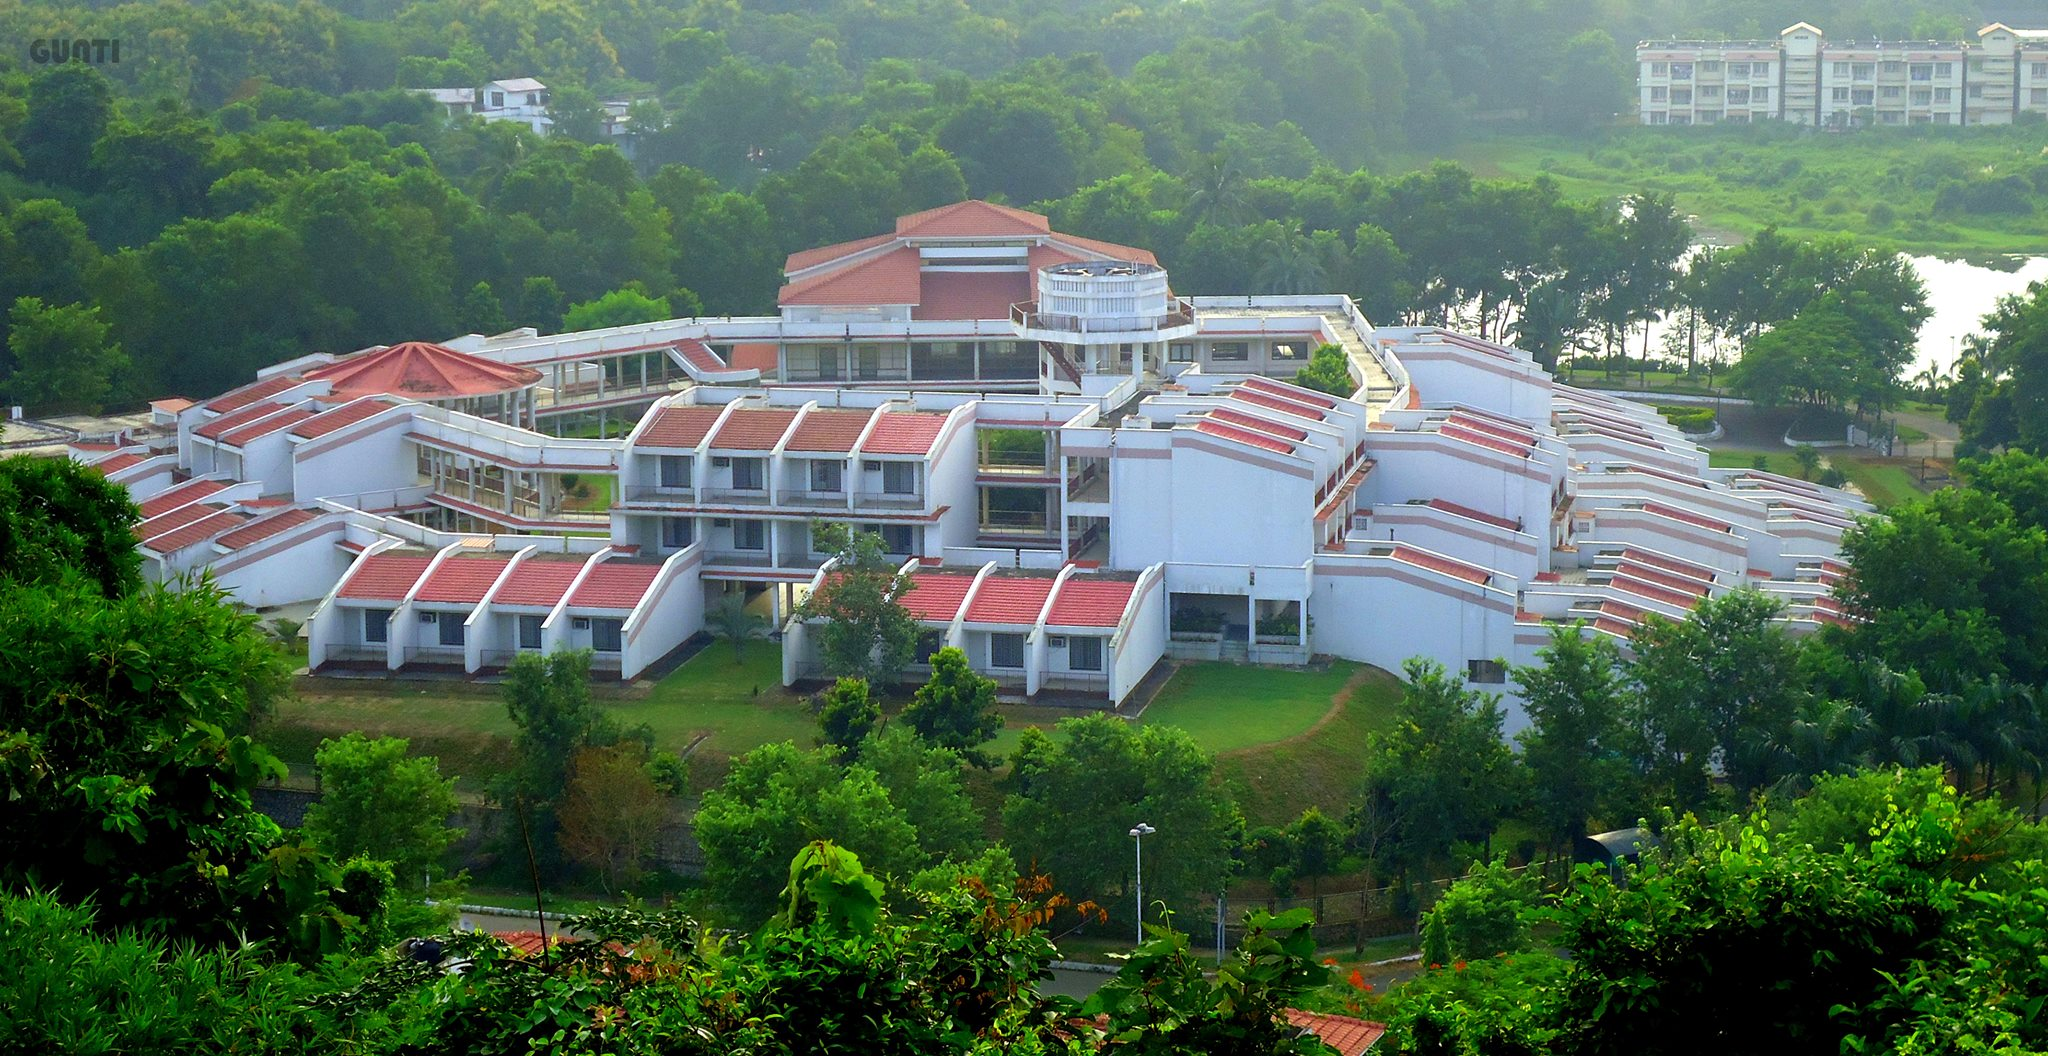 J d institute of fashion technology guwahati 76